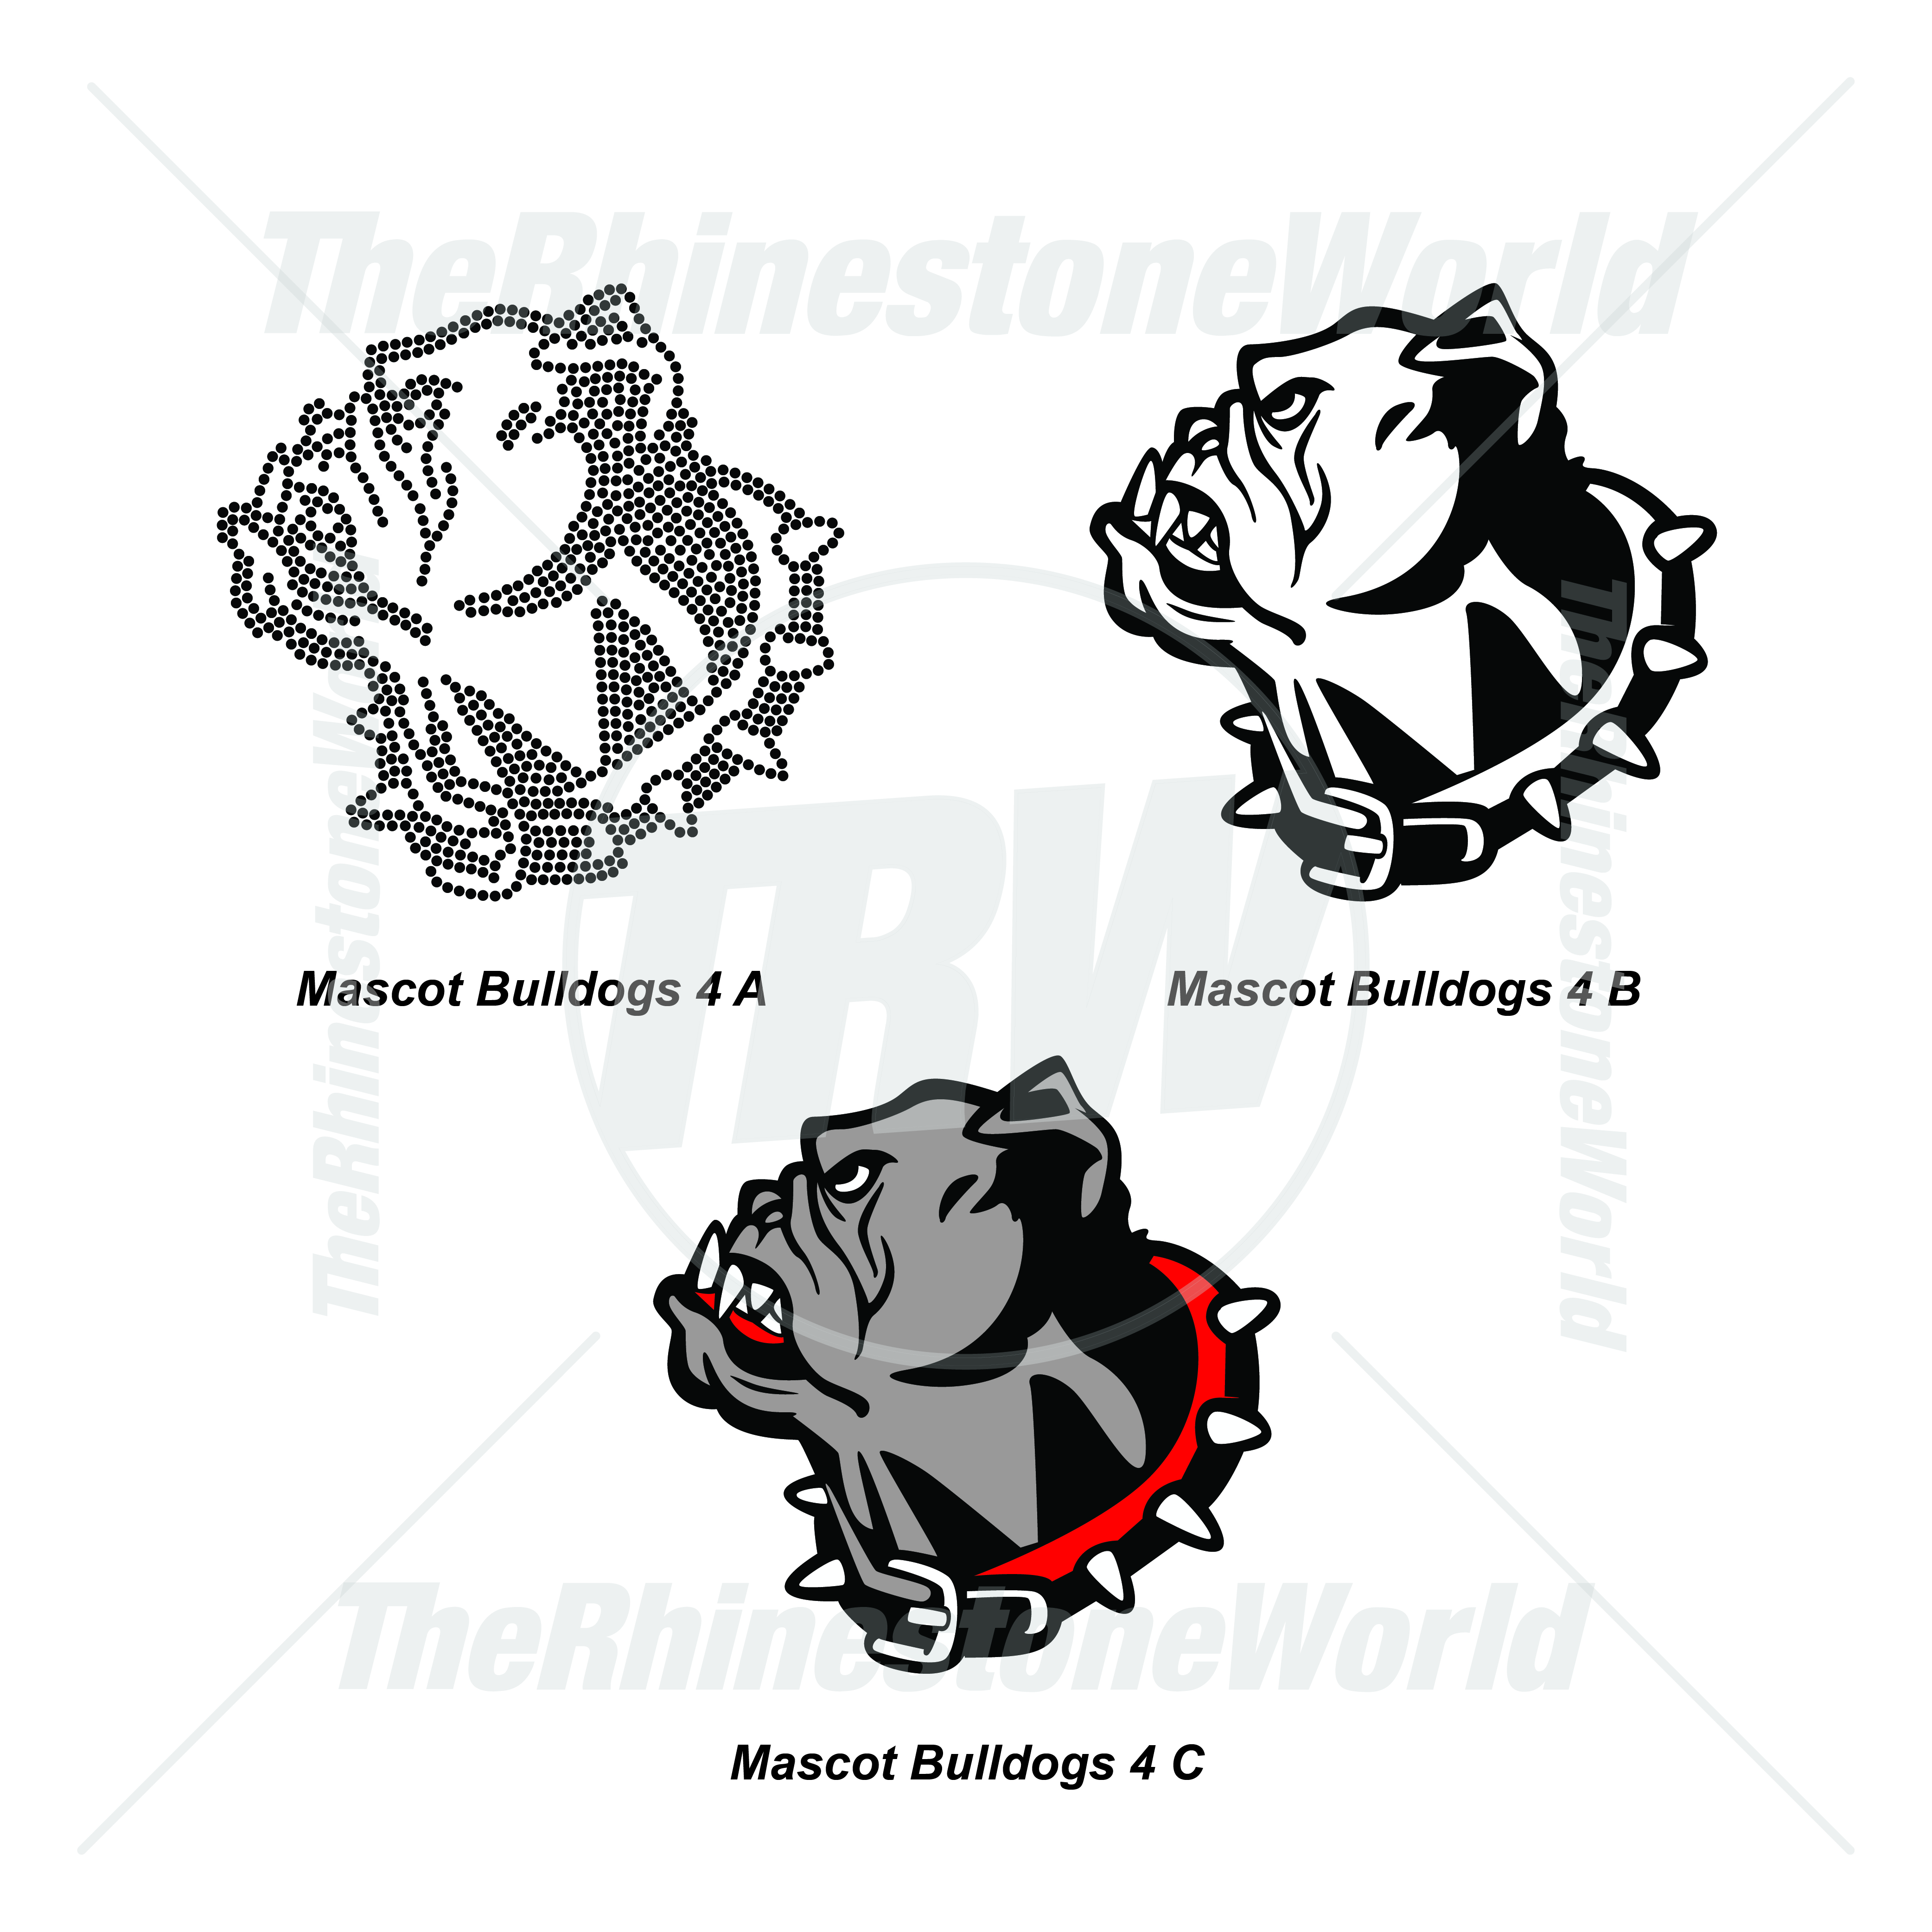 TRW Mascot Bulldog 4 - Download